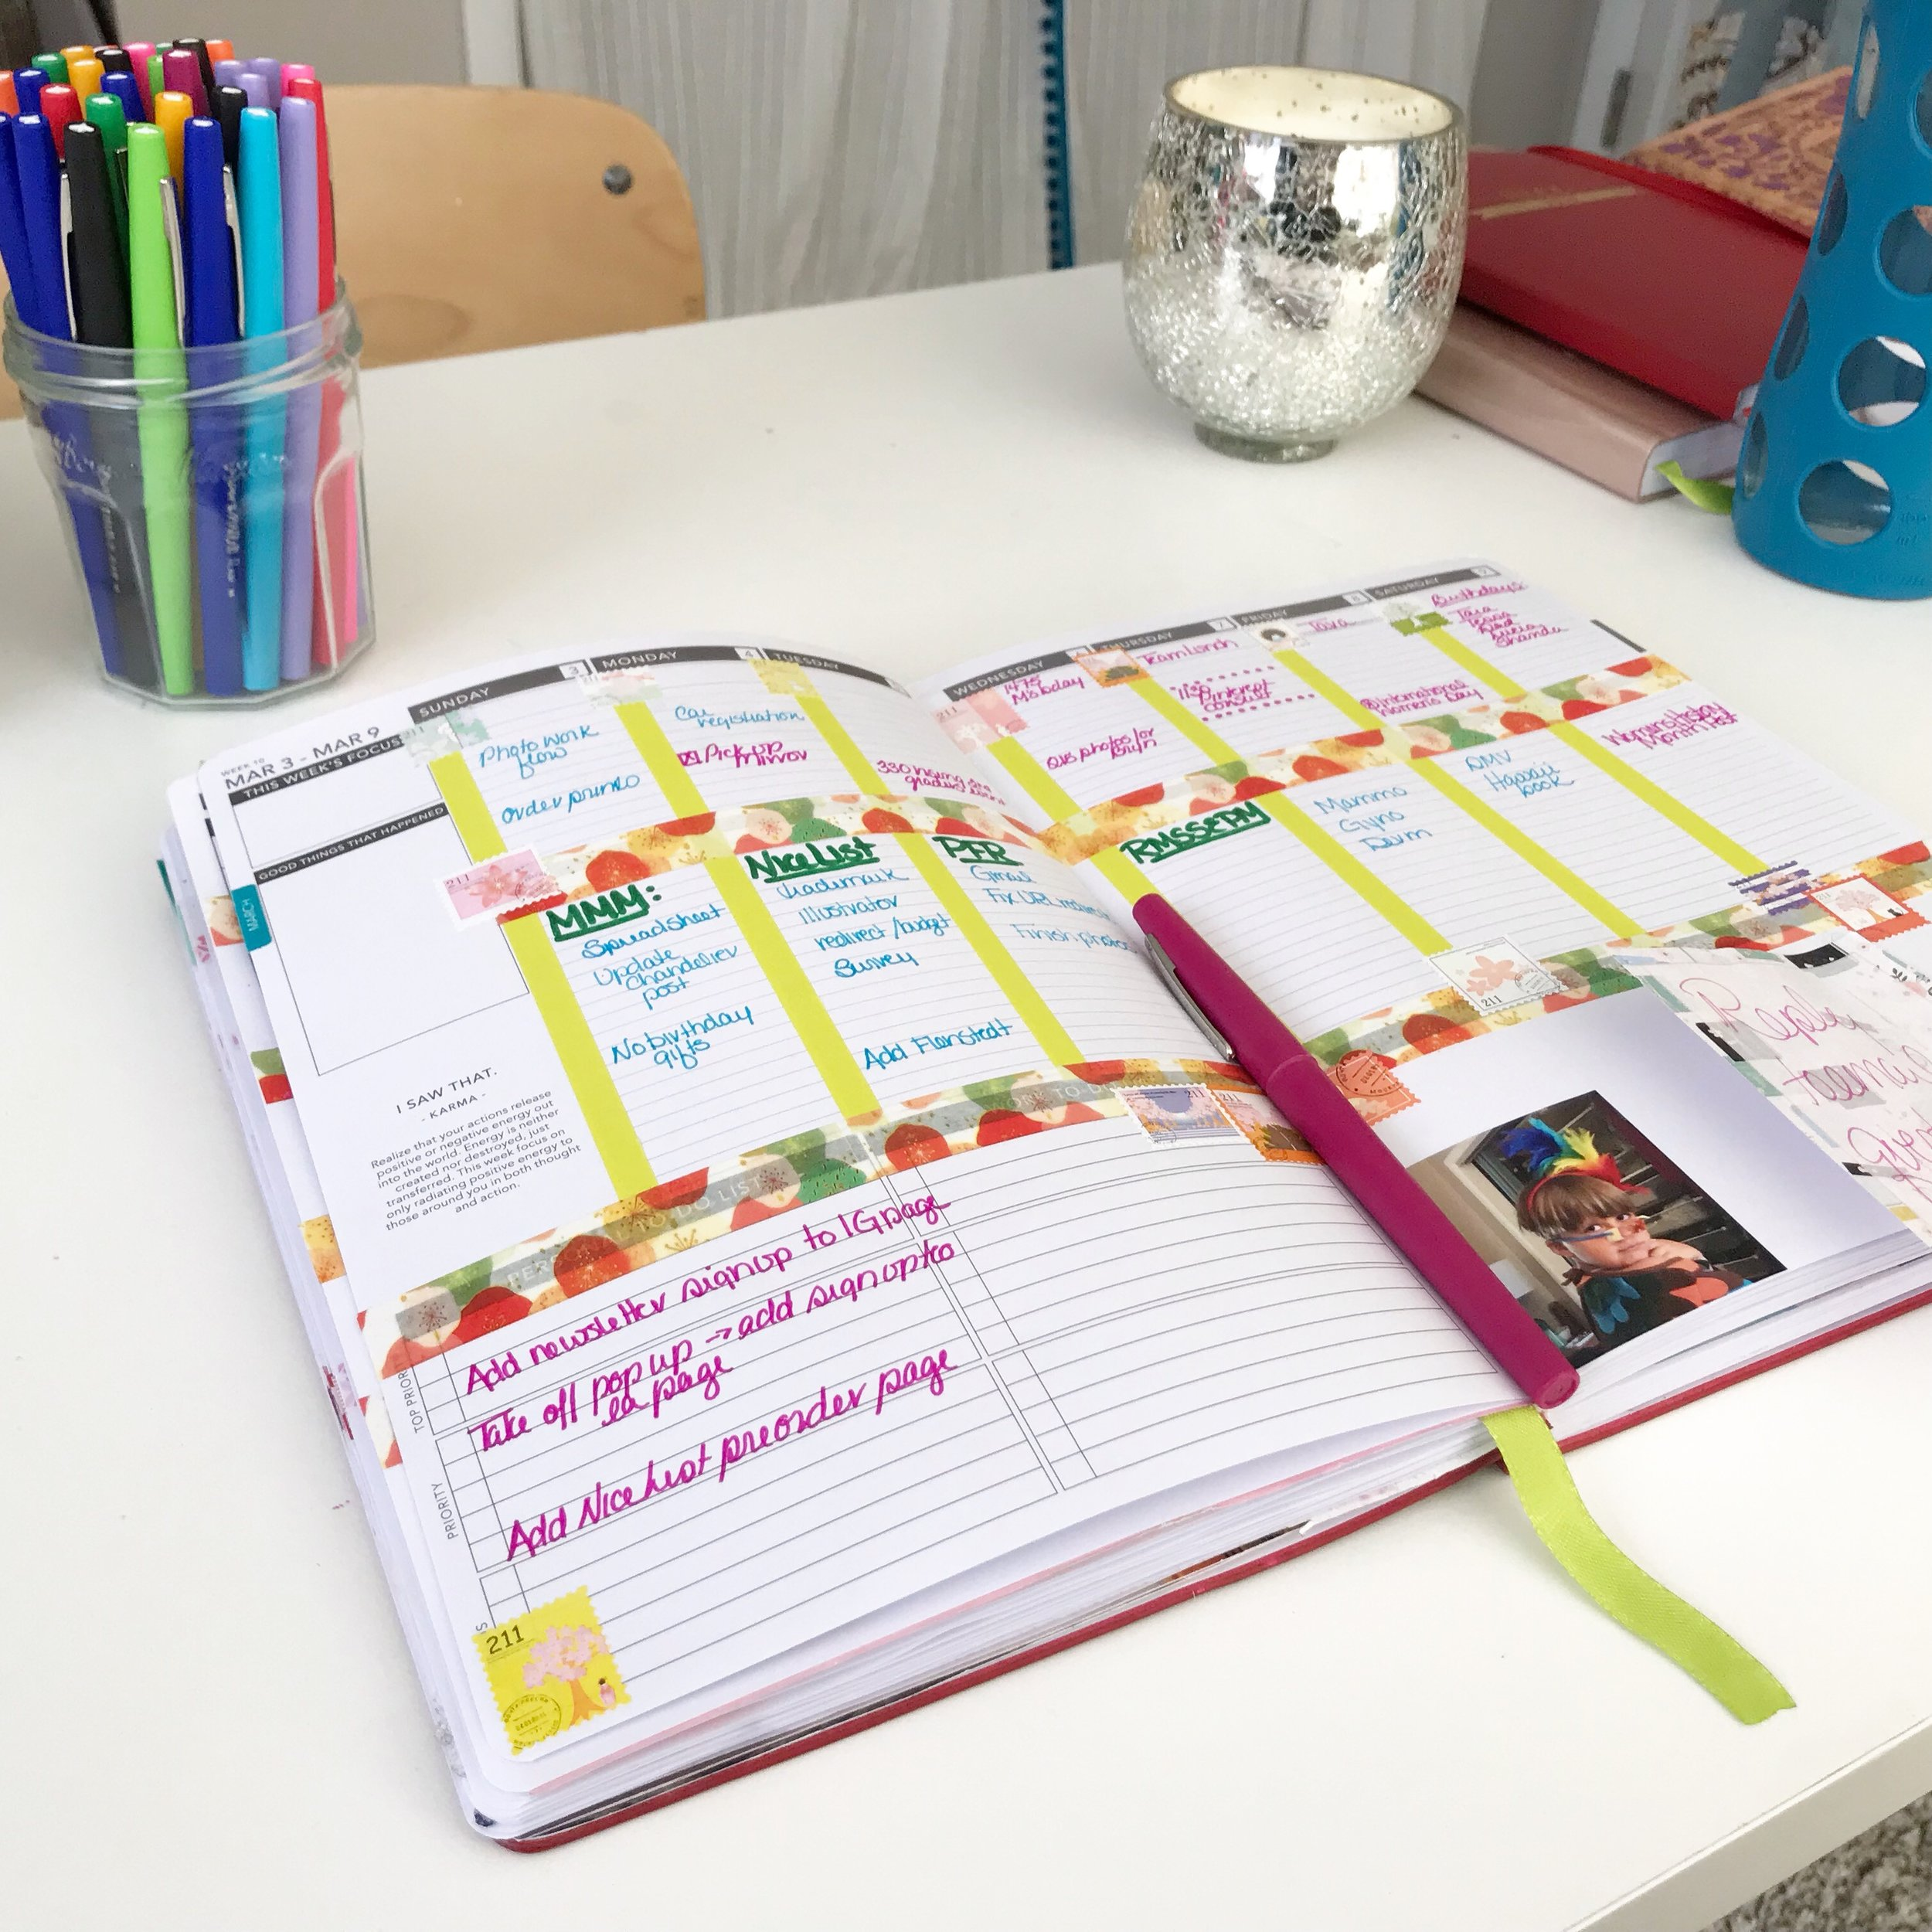 Washi tape and stickers make a plain planner more fun. Color code events, tasks, and projects. Simple layouts and great pen suggestions for the best planner.